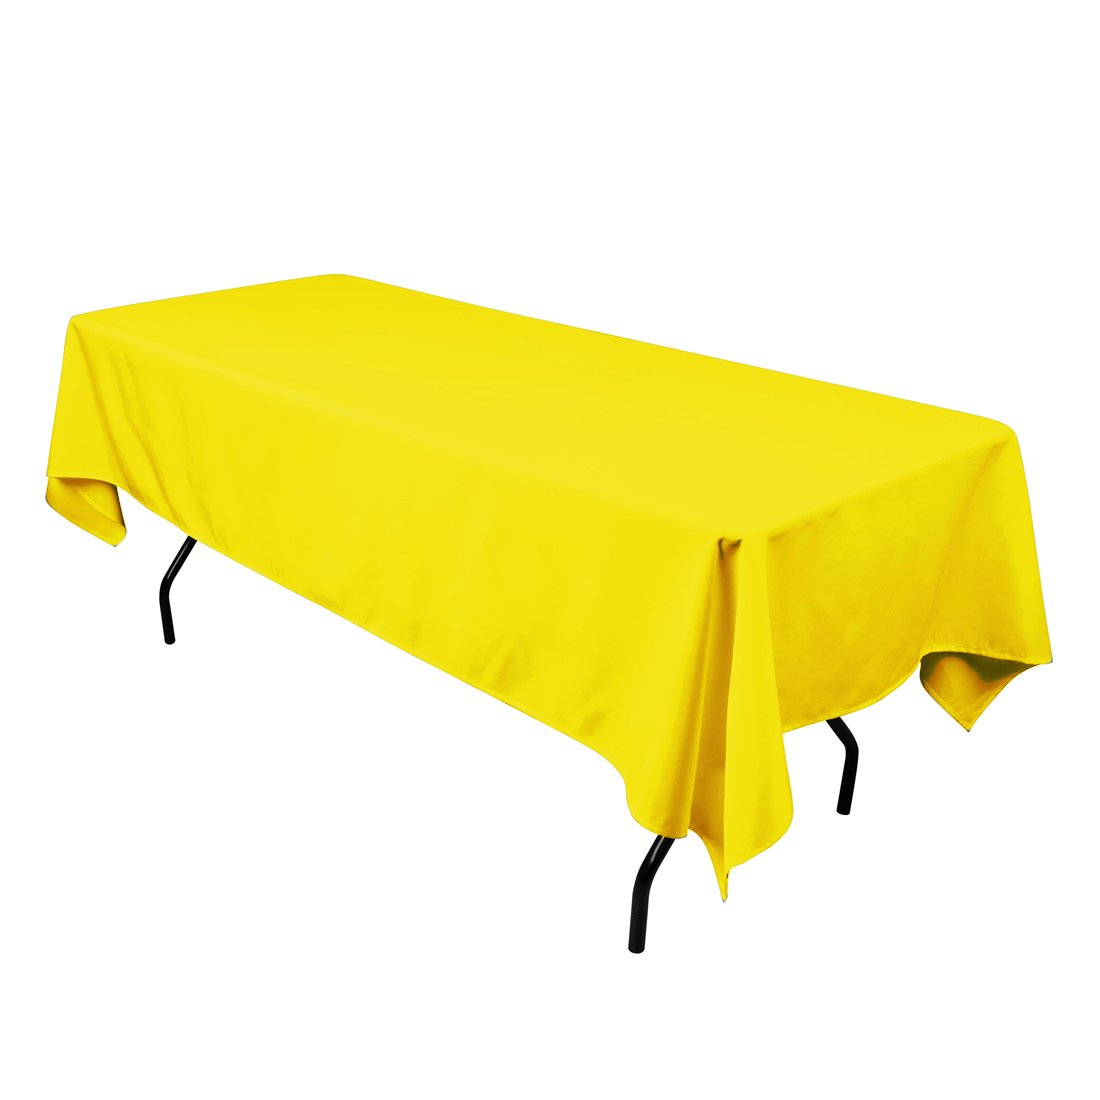 Amazon.com: Yellow - Tablecloths / Kitchen & Table Linens: Kitchen